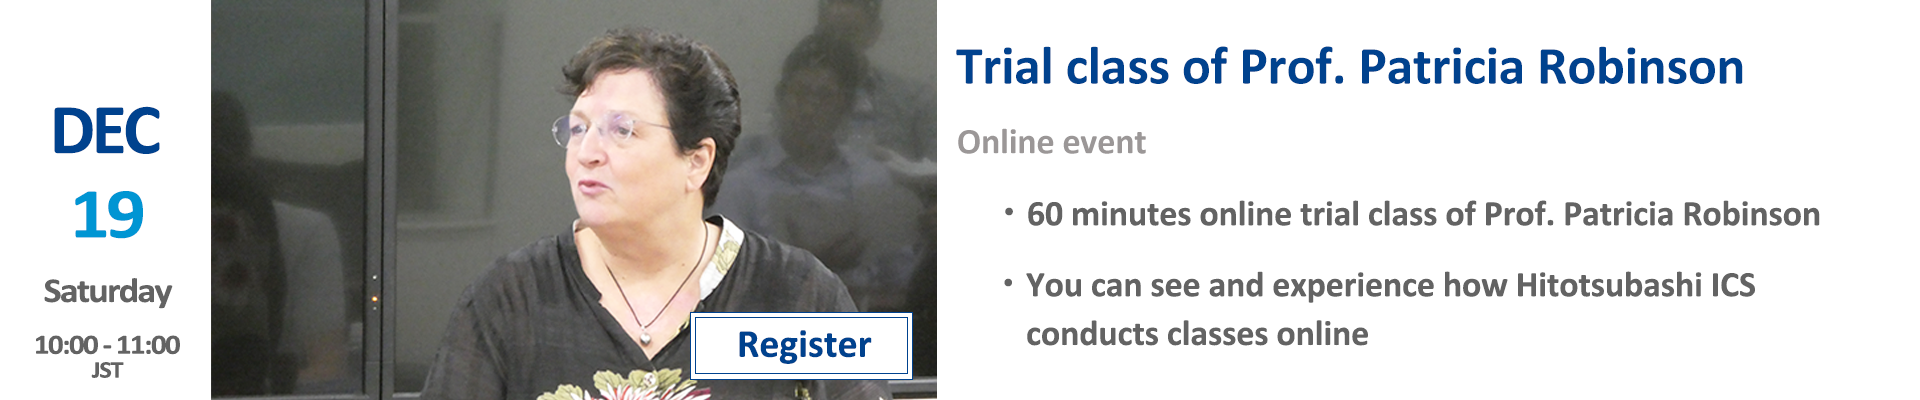 trial with prof tish